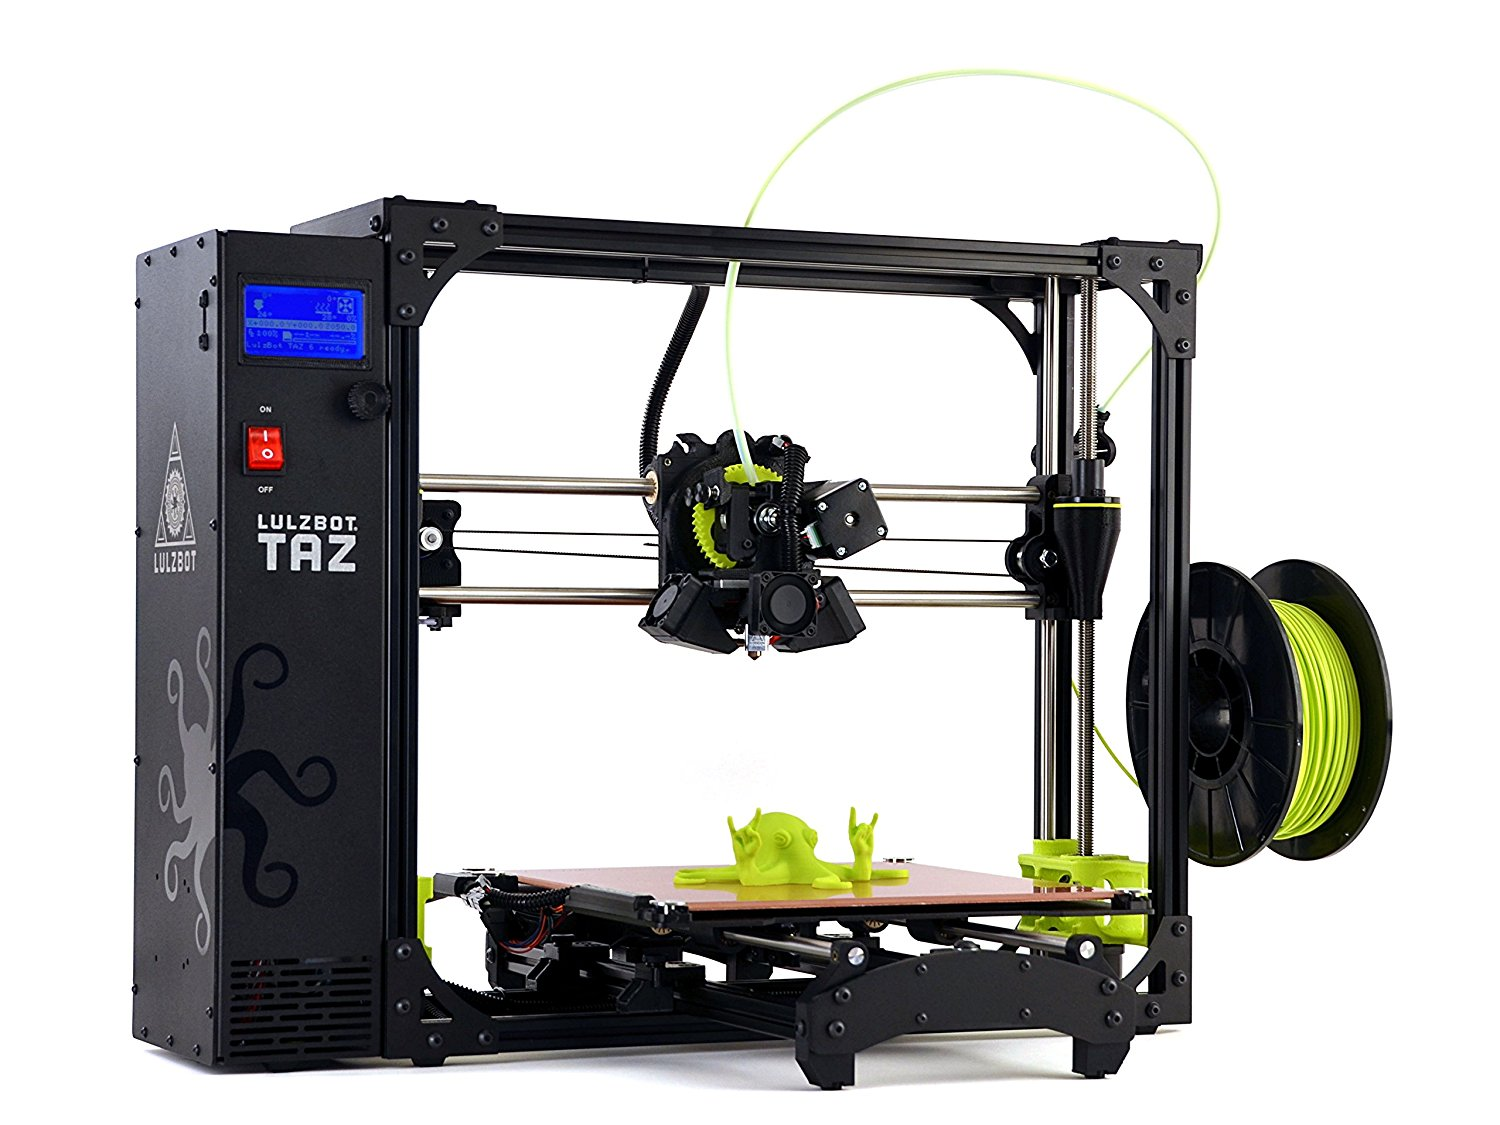 Lulzbot Taz 6 Printer